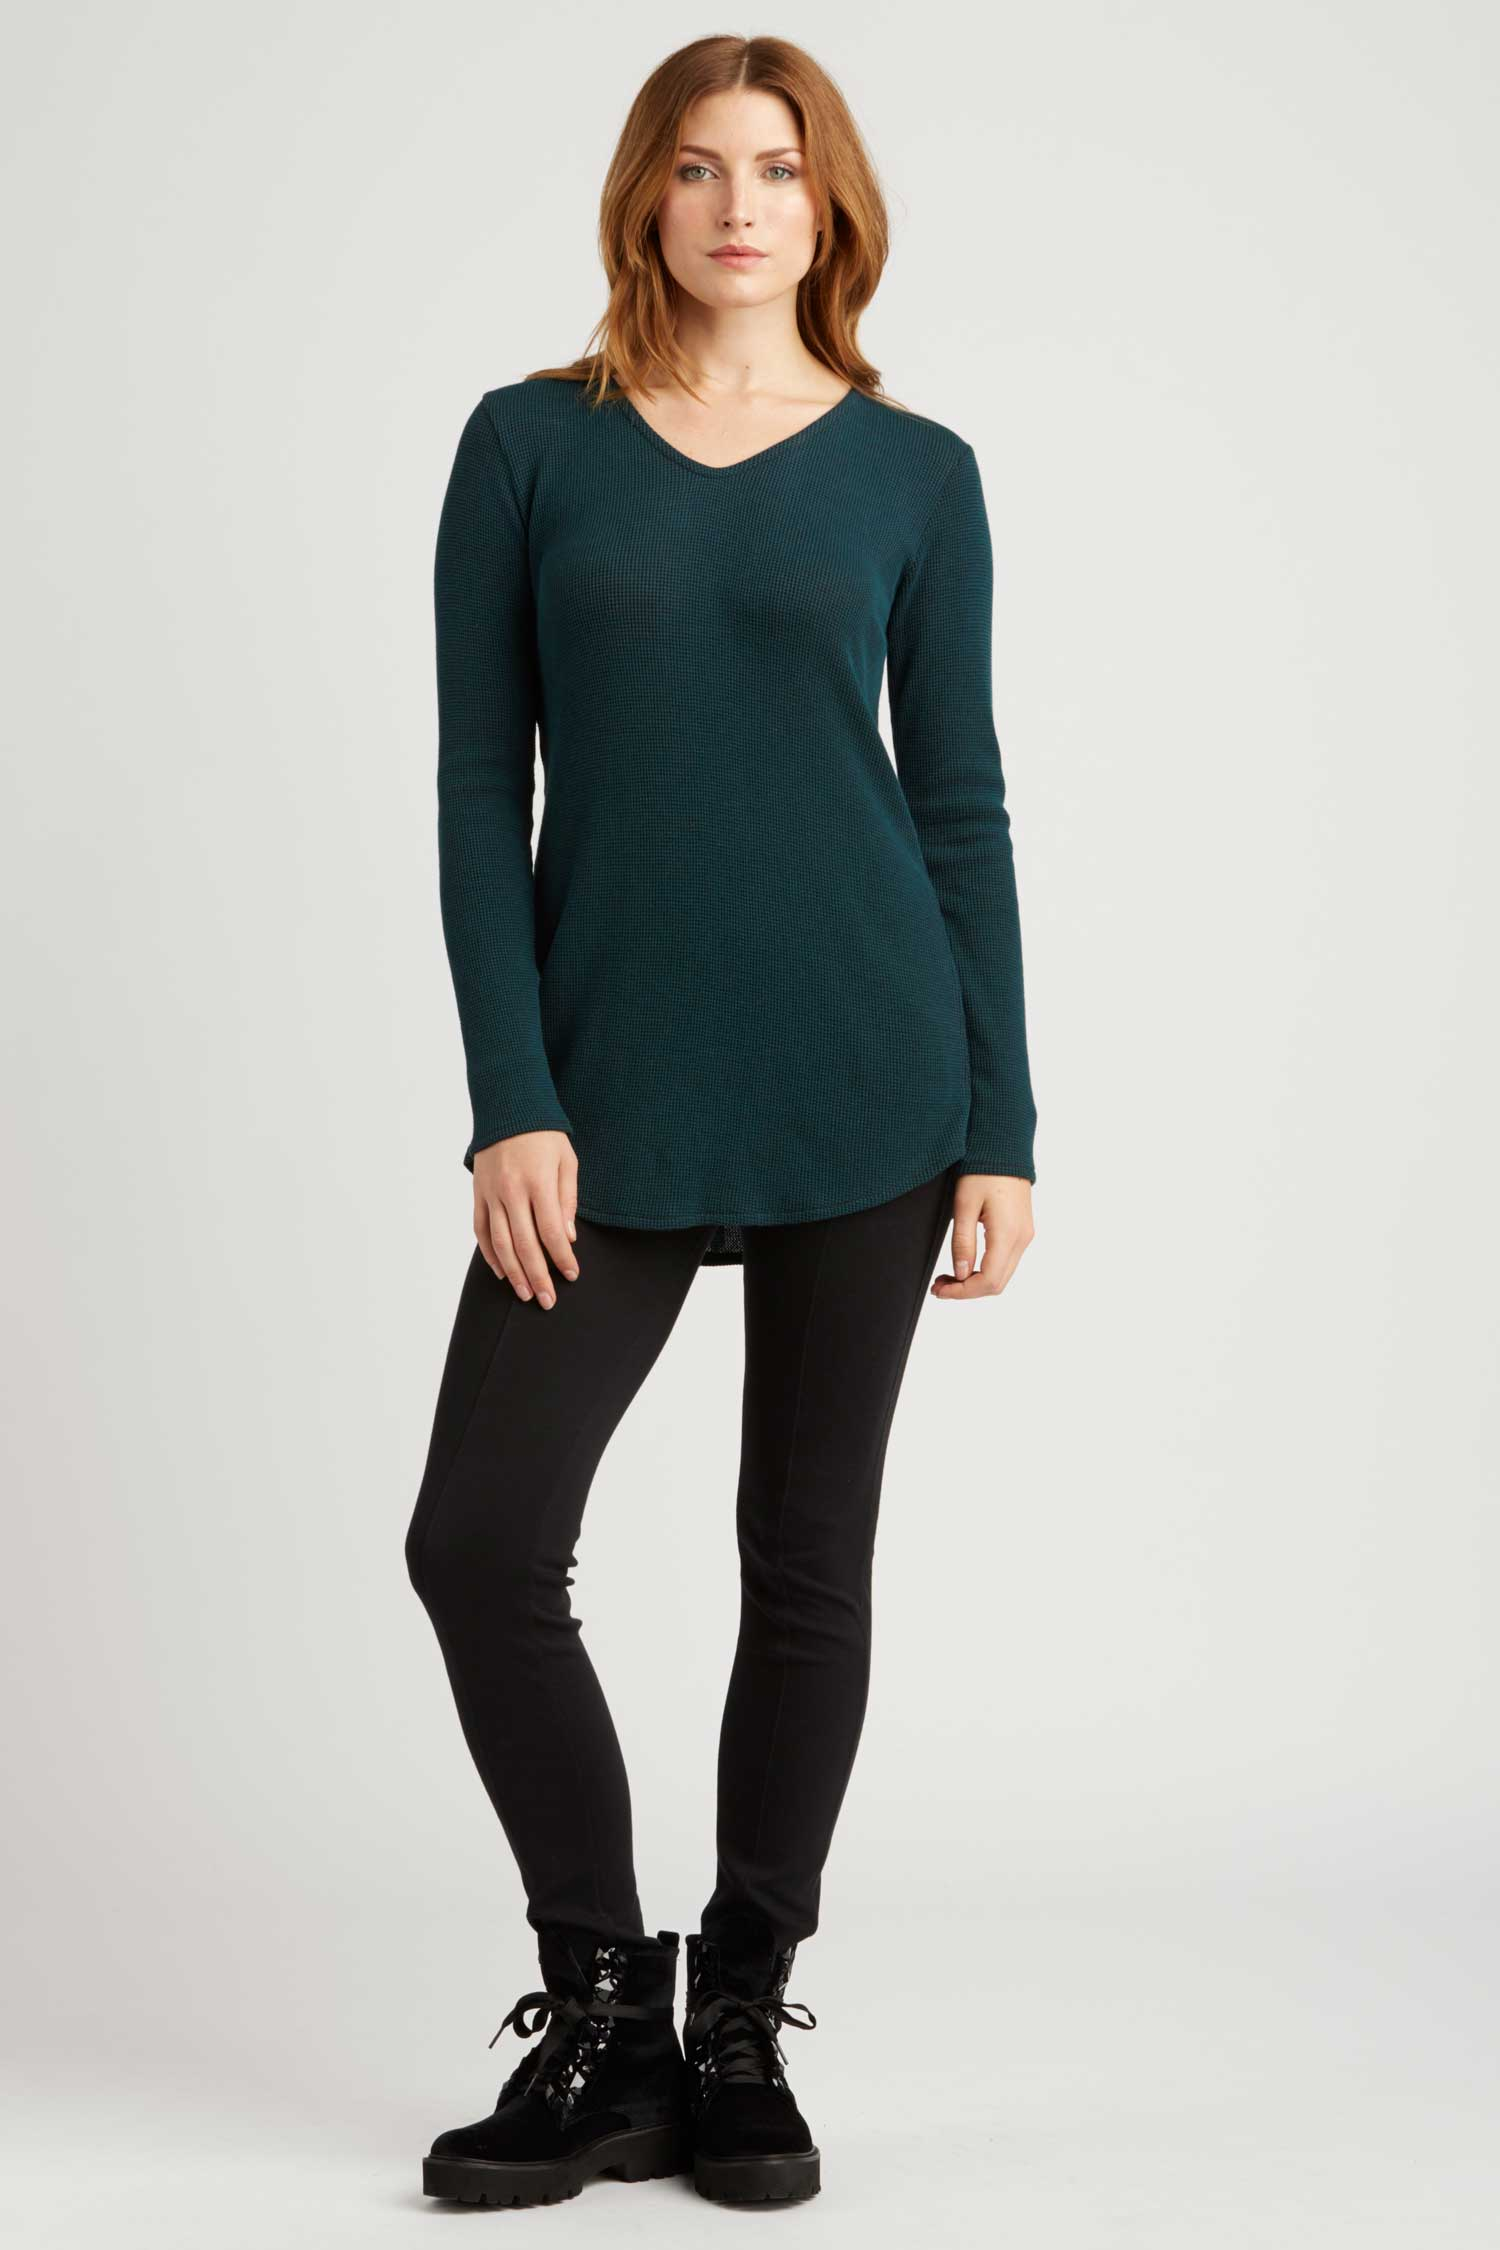 Womens Top Jade Green Waffle Tie Back Pullover | Organic Cotton Clothing